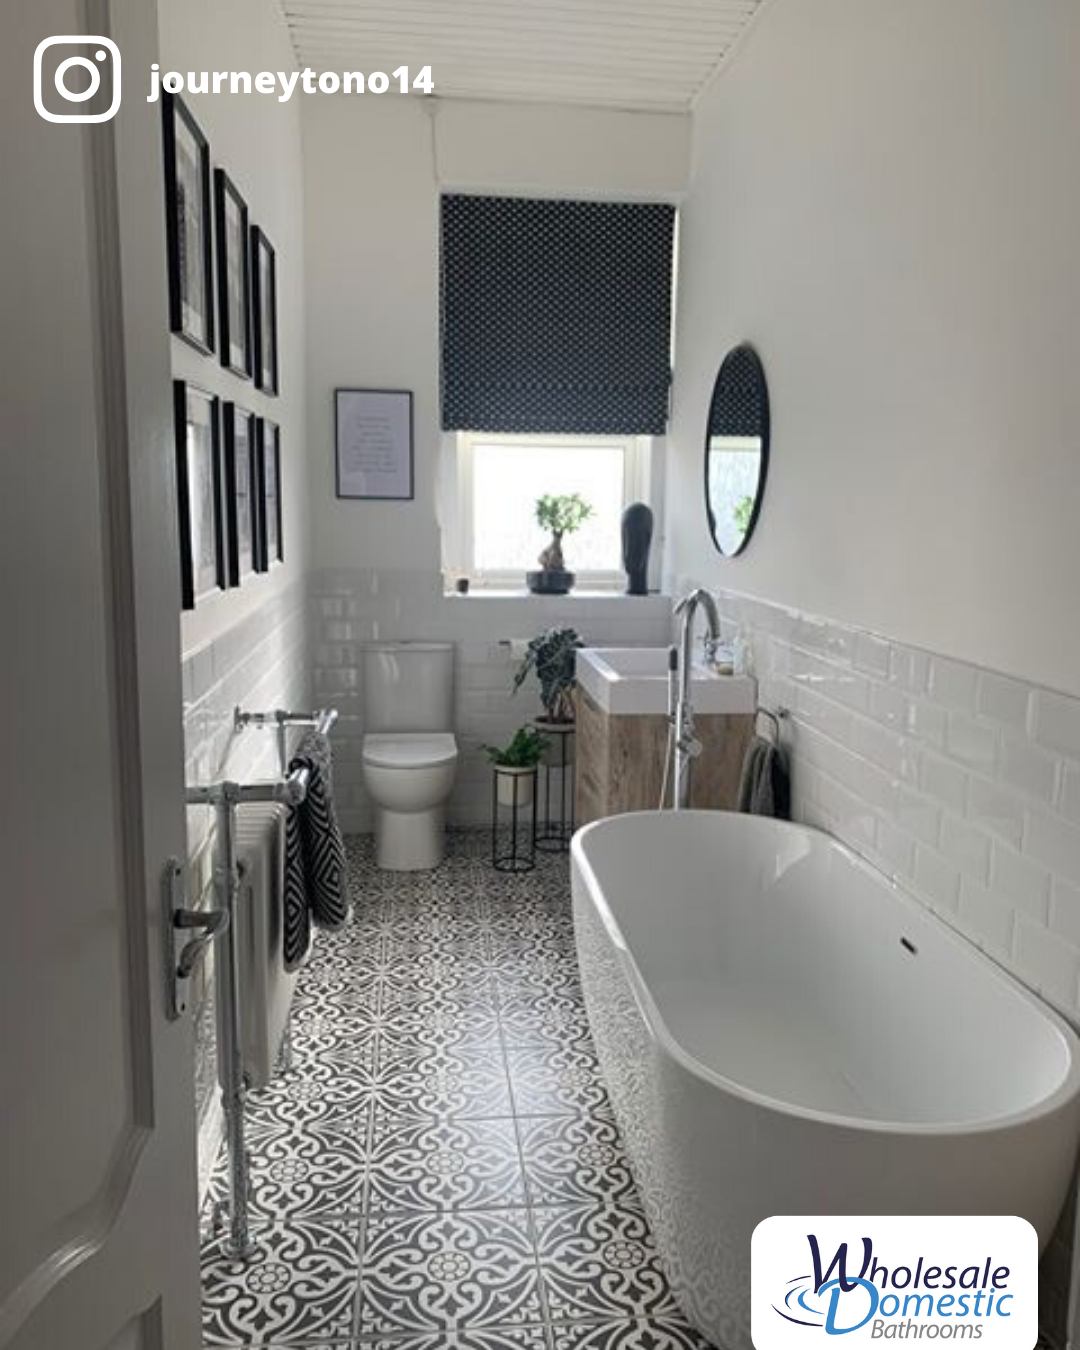 What a beautiful use of space! We love what this customer has done with their new bathroom!   #WholesaleDomesticBathrooms #CustomerBathrooms #MYWDBathroom #RealBathrooms #BathroomIdeas #BathroomInspo #NewIdeas #InteriorIdeas #InteriorDesign #FreestandingBath #VintageRadiator #IHaveThisThingWithTiles